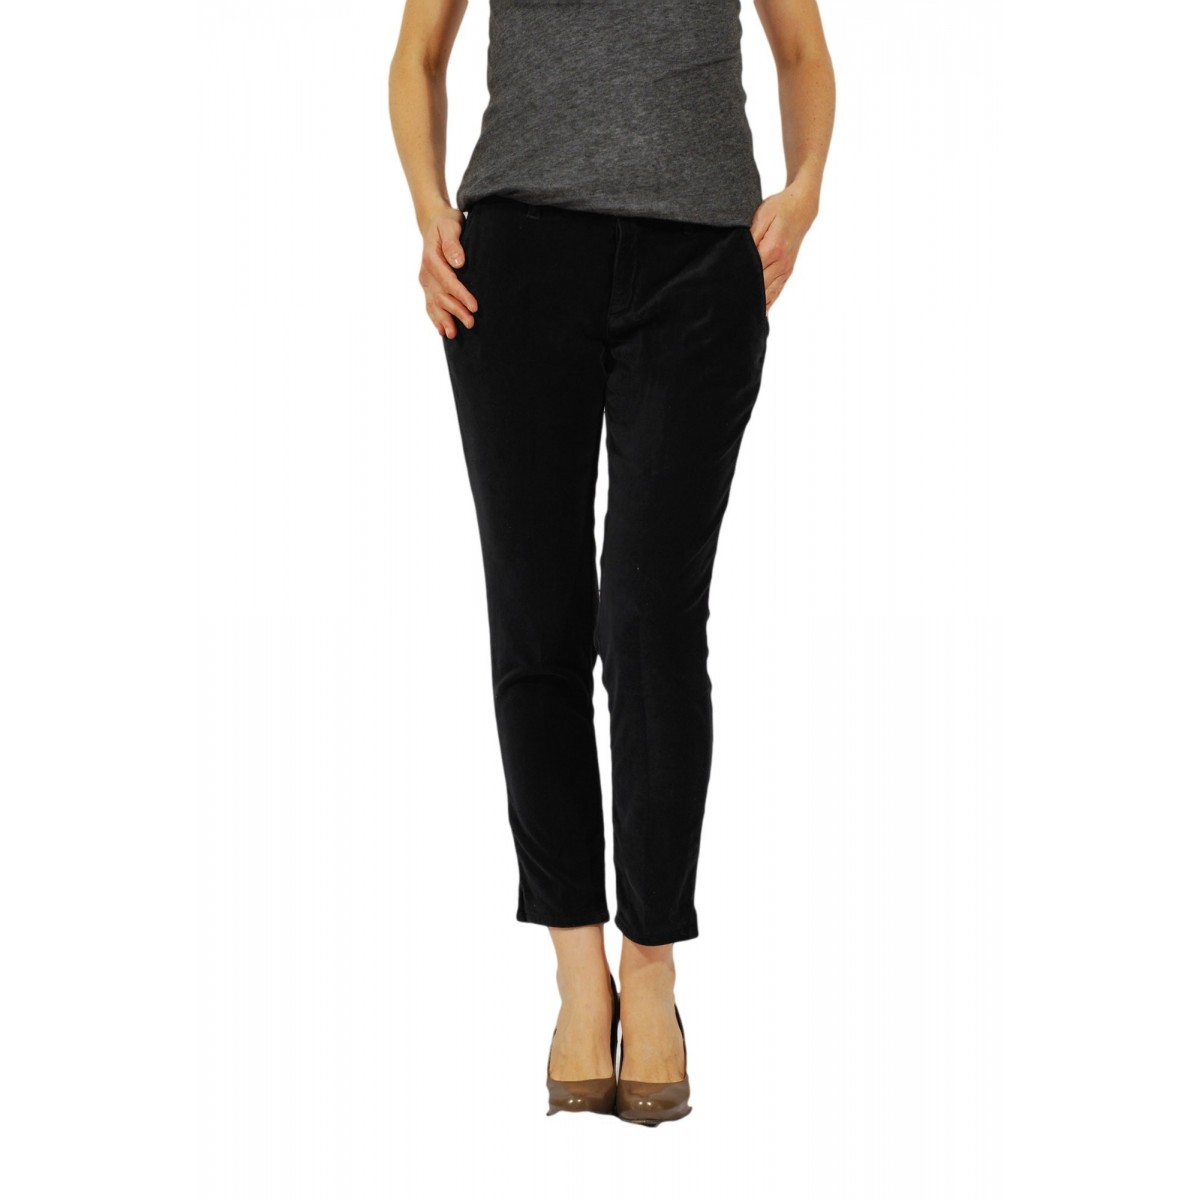 Trouser Woman Department Five - P052 T0002 132 Vellutto Strech Trouser Woman Vellut0